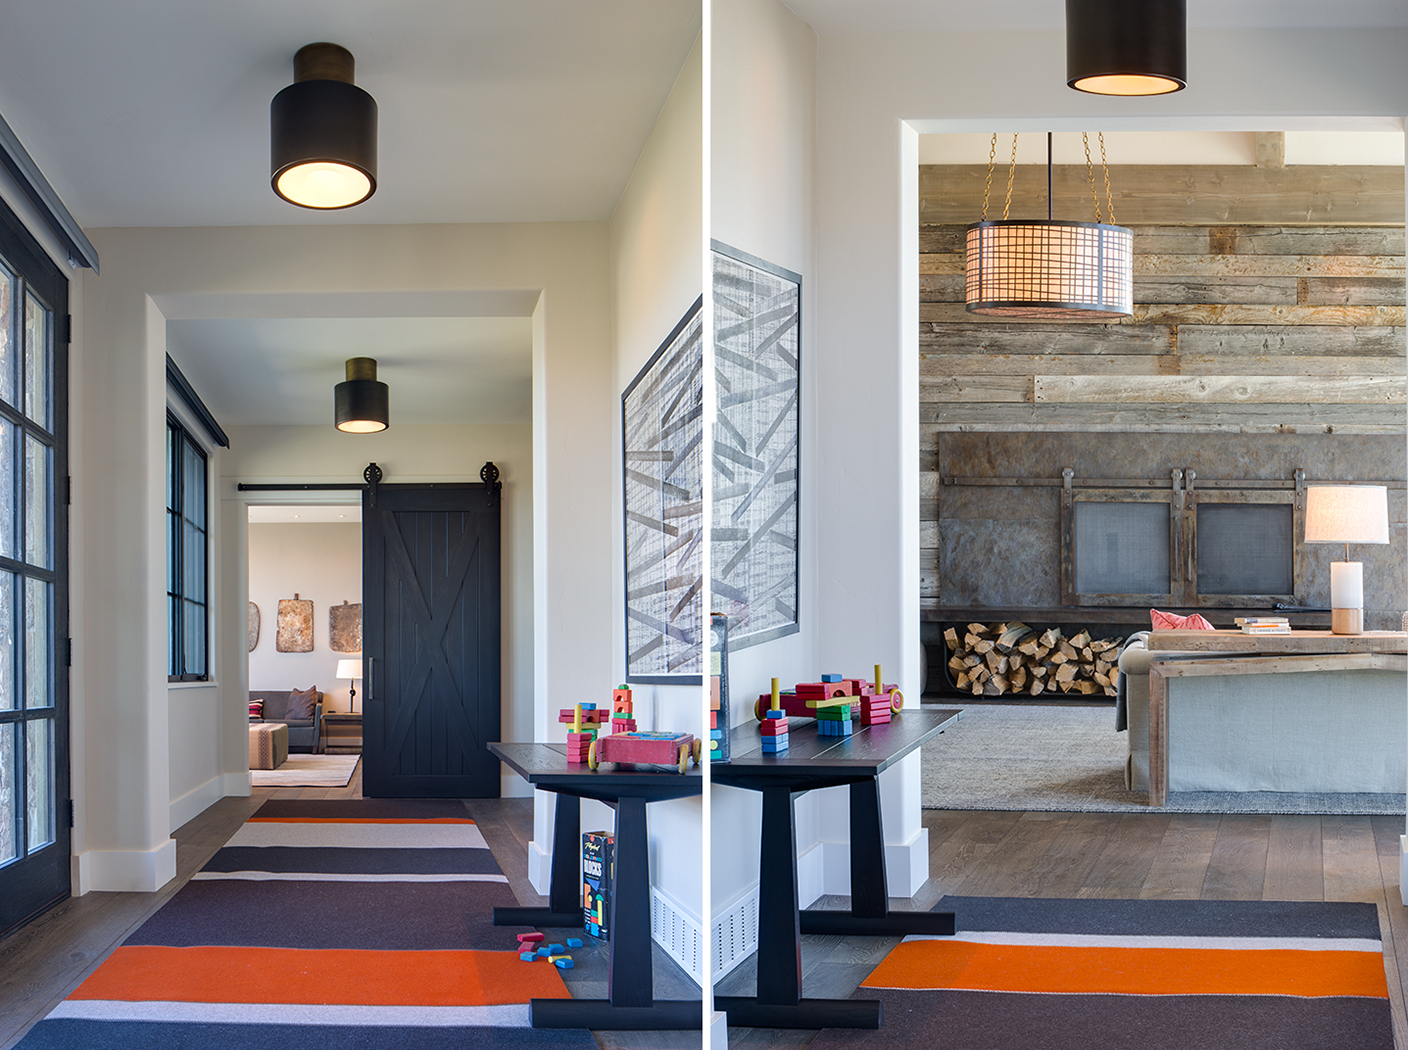 This is a montage of two photos taken in a hallway in a mountain modern residence. The hallway is loing with a carpet of orange, cream and brown striping and at one end of one photo is the living room with a custom steel fireplace and at the end of the other photo is a barn wood door on rollers and the tv room with couches and a center table.